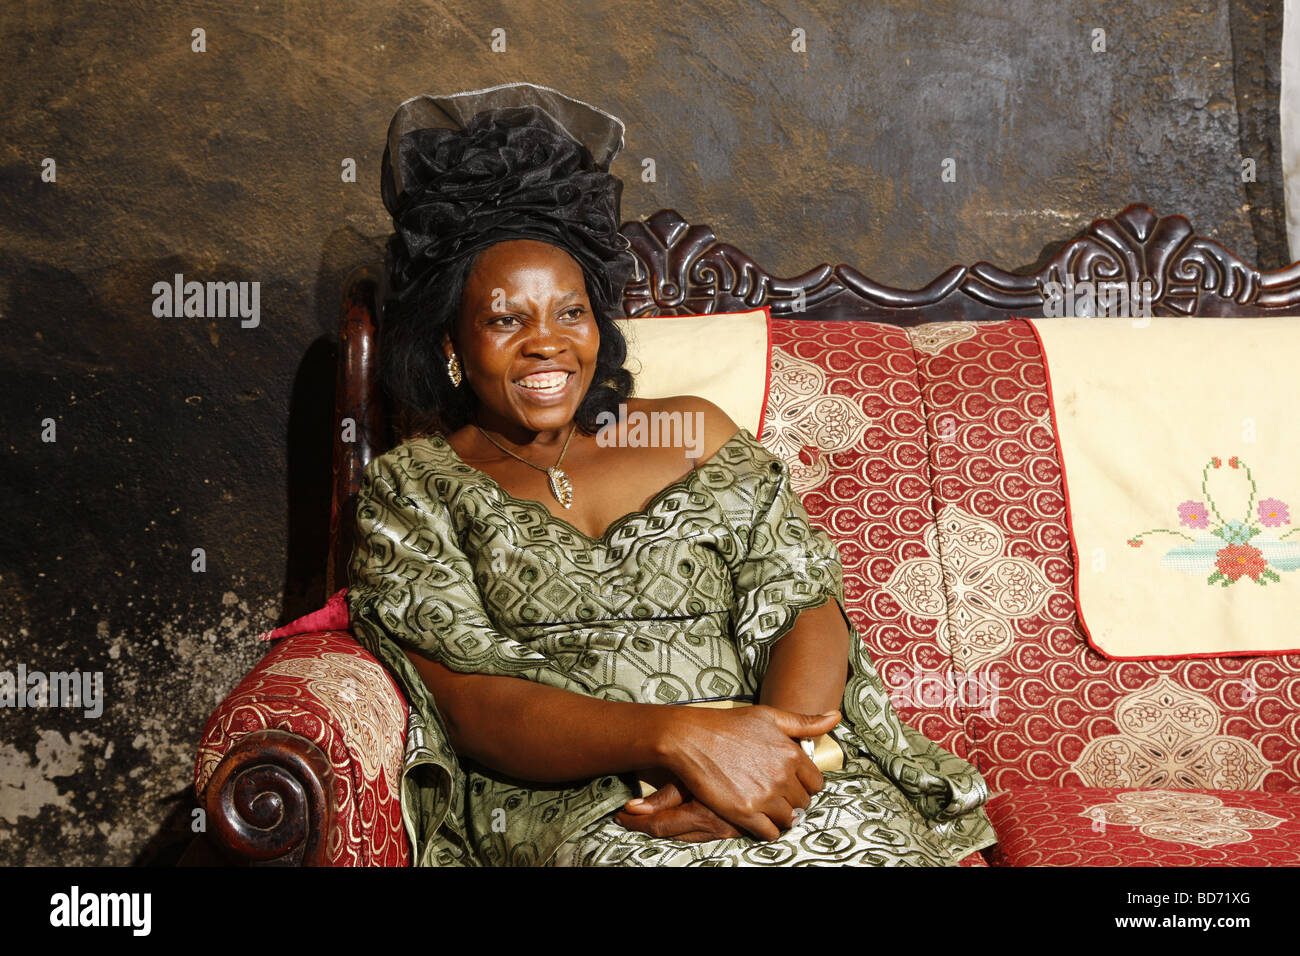 Princess Constance, one of the six wives of the Fon, chief farmstead, Bafut, West Cameroon, Cameroon, Africa - Stock Image